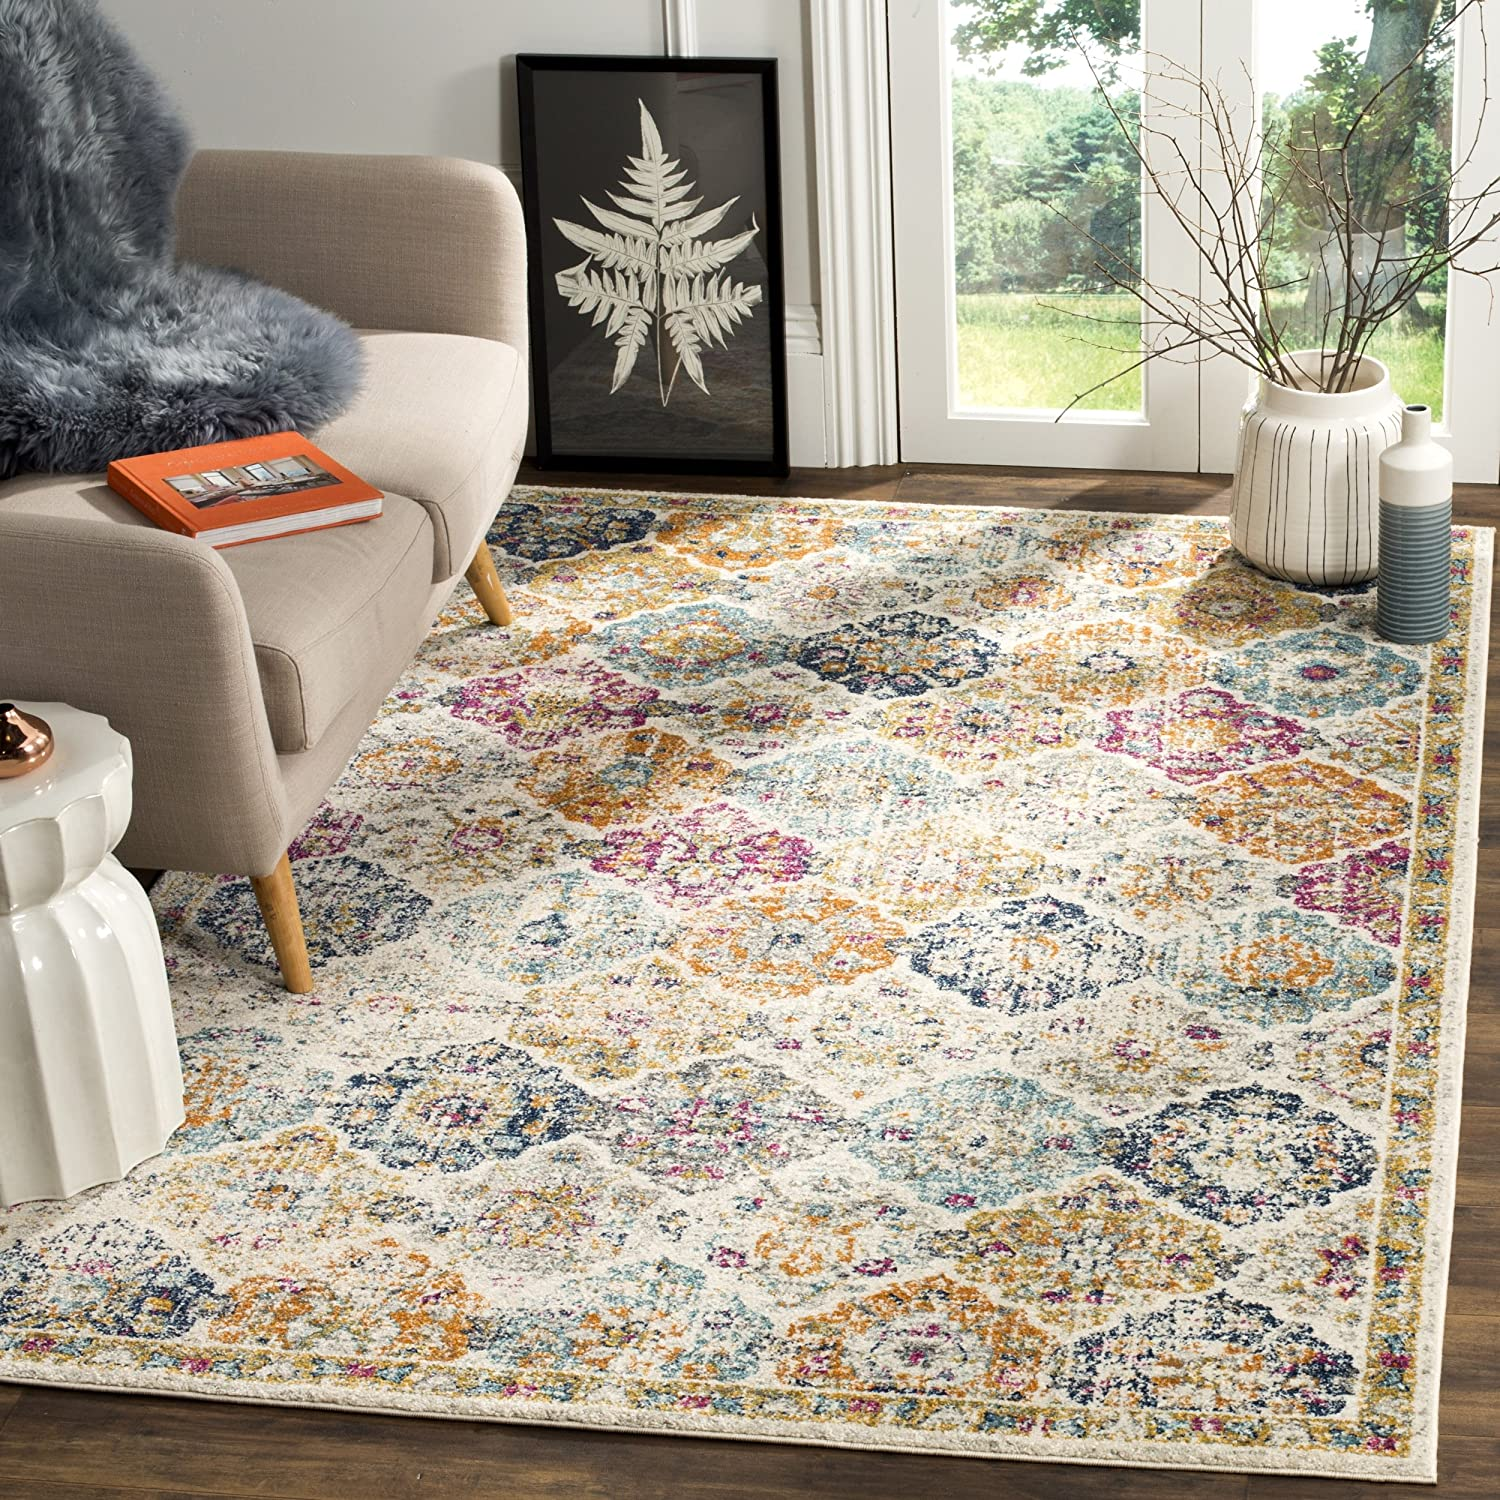 Safavieh Madison Collection MAD611B Cream and Multicolored Bohemian Chic Distressed Area Rug